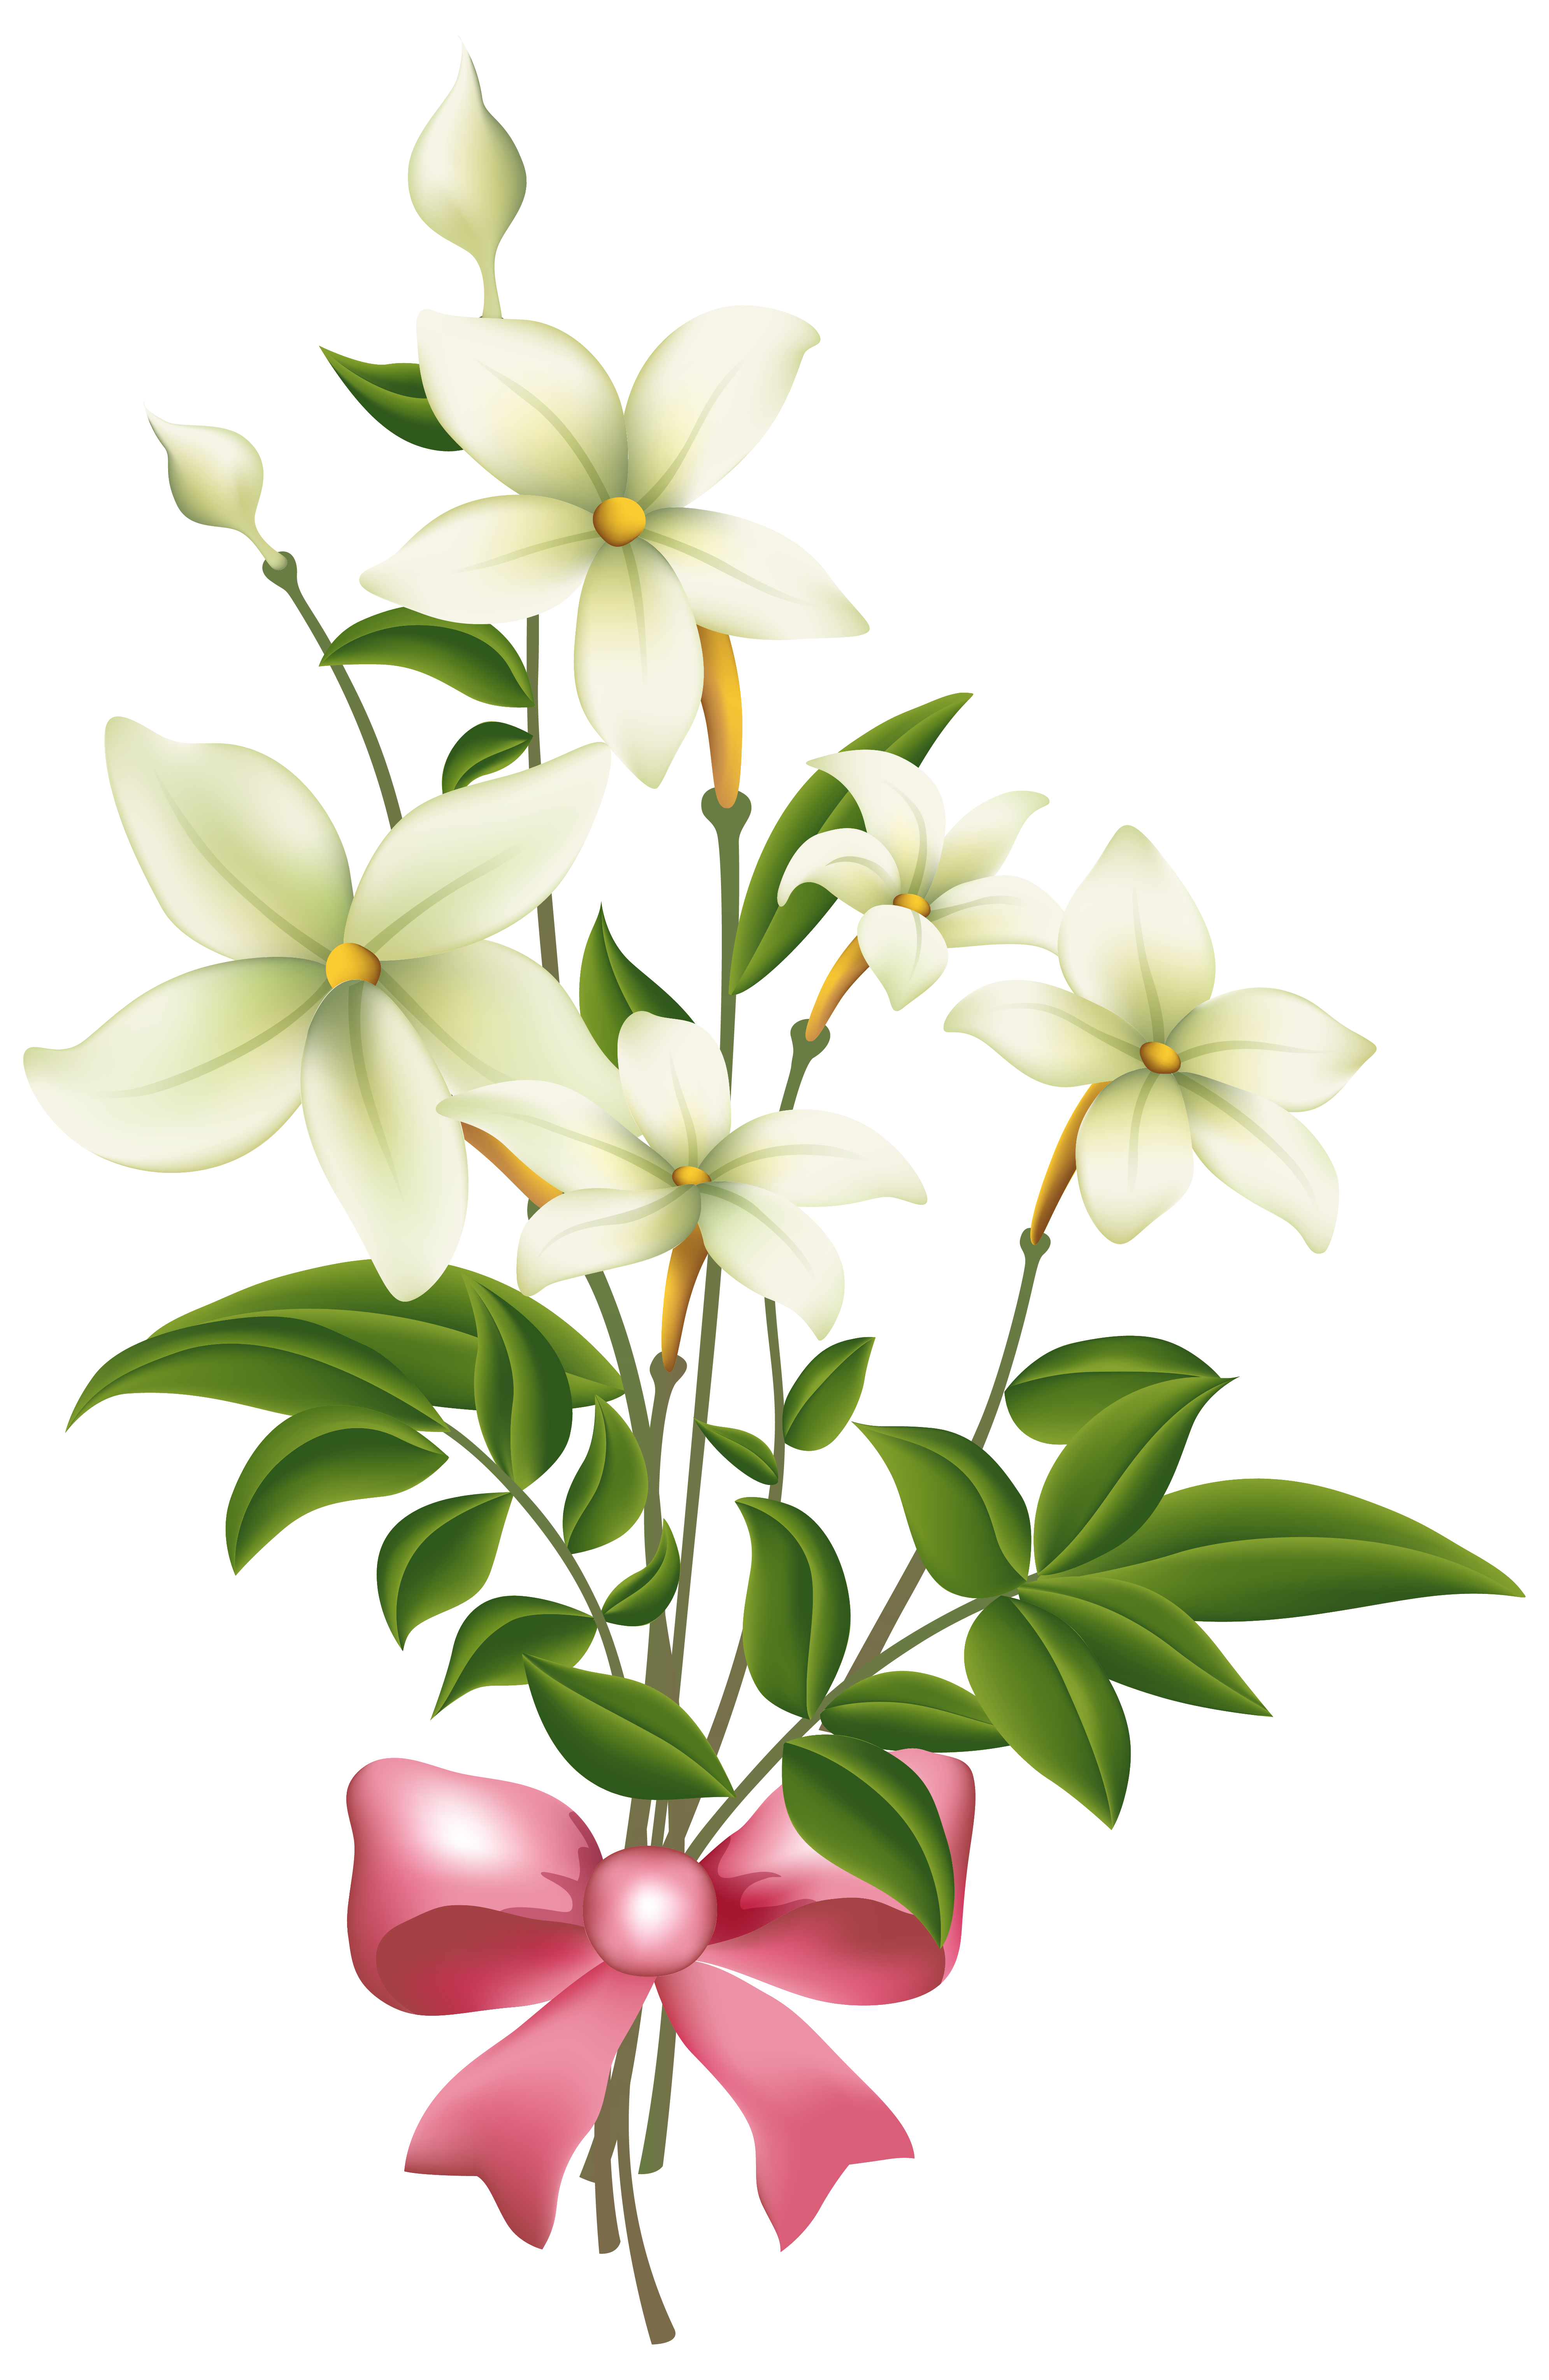 Jasmine flower clipart black and white graphic download White Flowers with Pink Bow PNG Clipart Image | Gallery ... graphic download